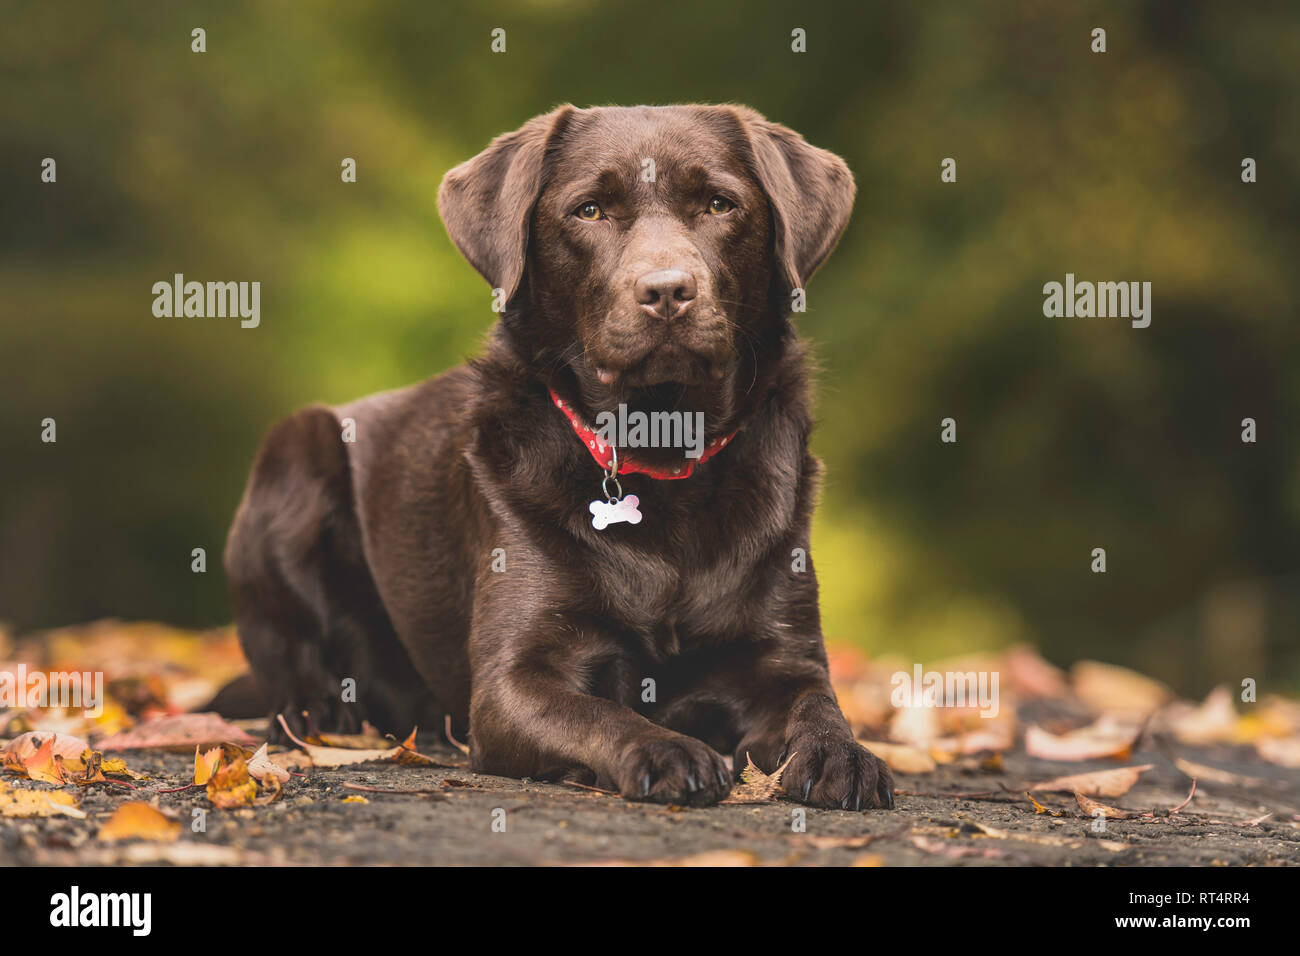 a chocolate labrador lying down in autumn leaves - Stock Image